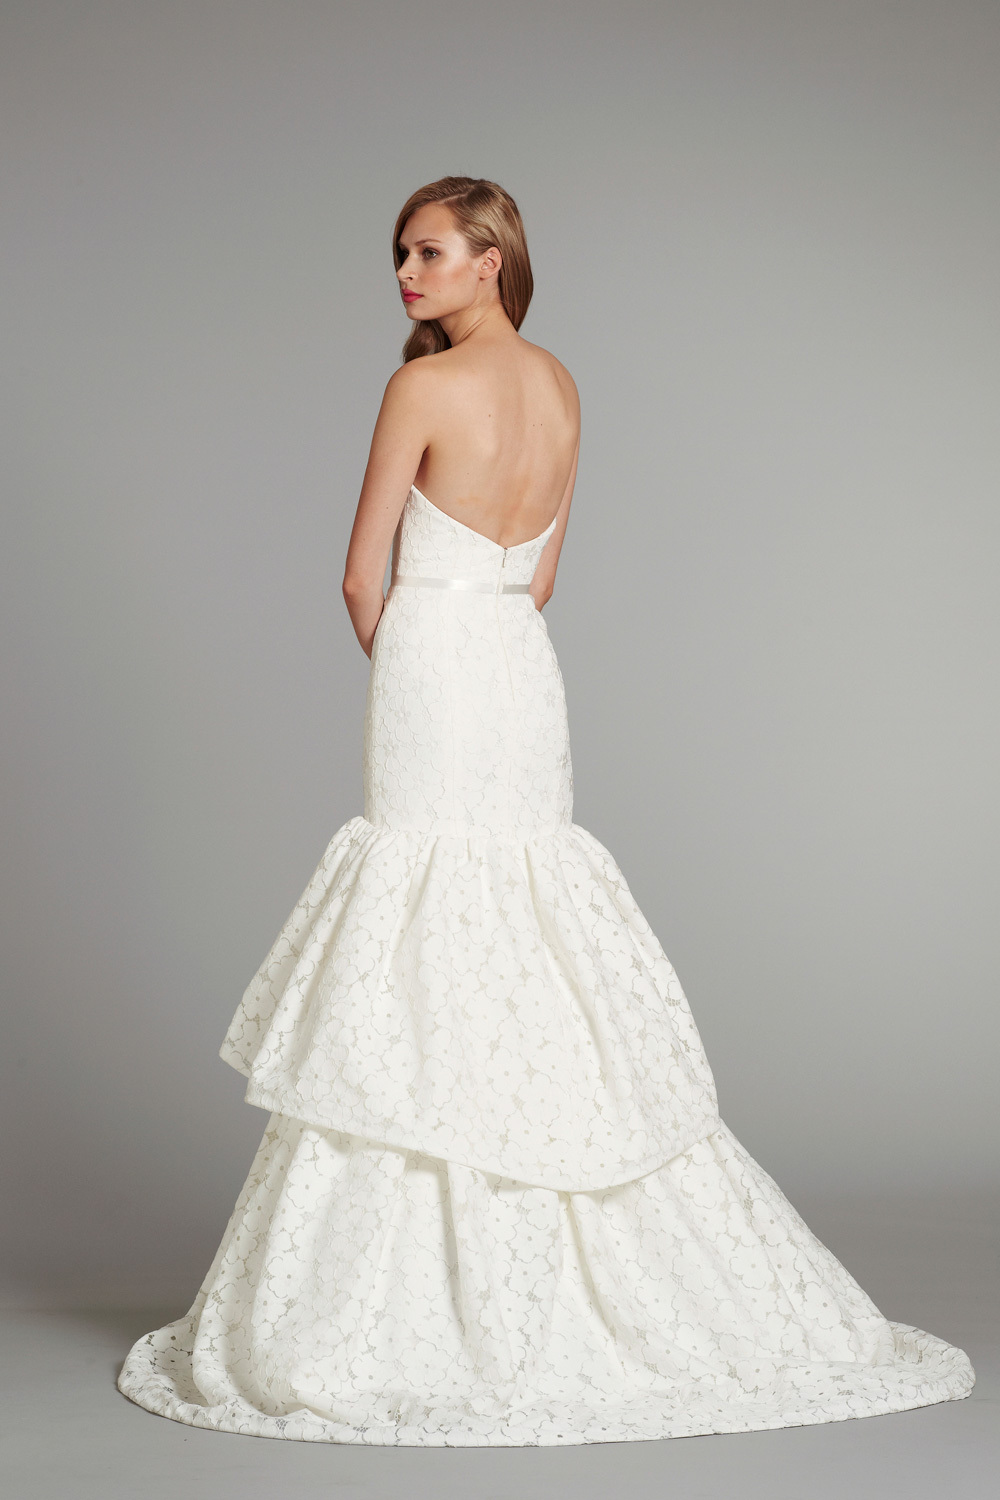 Bridal-gown-wedding-dress-jlm-hayley-paige-blush-fall-2012-poppy-back.full